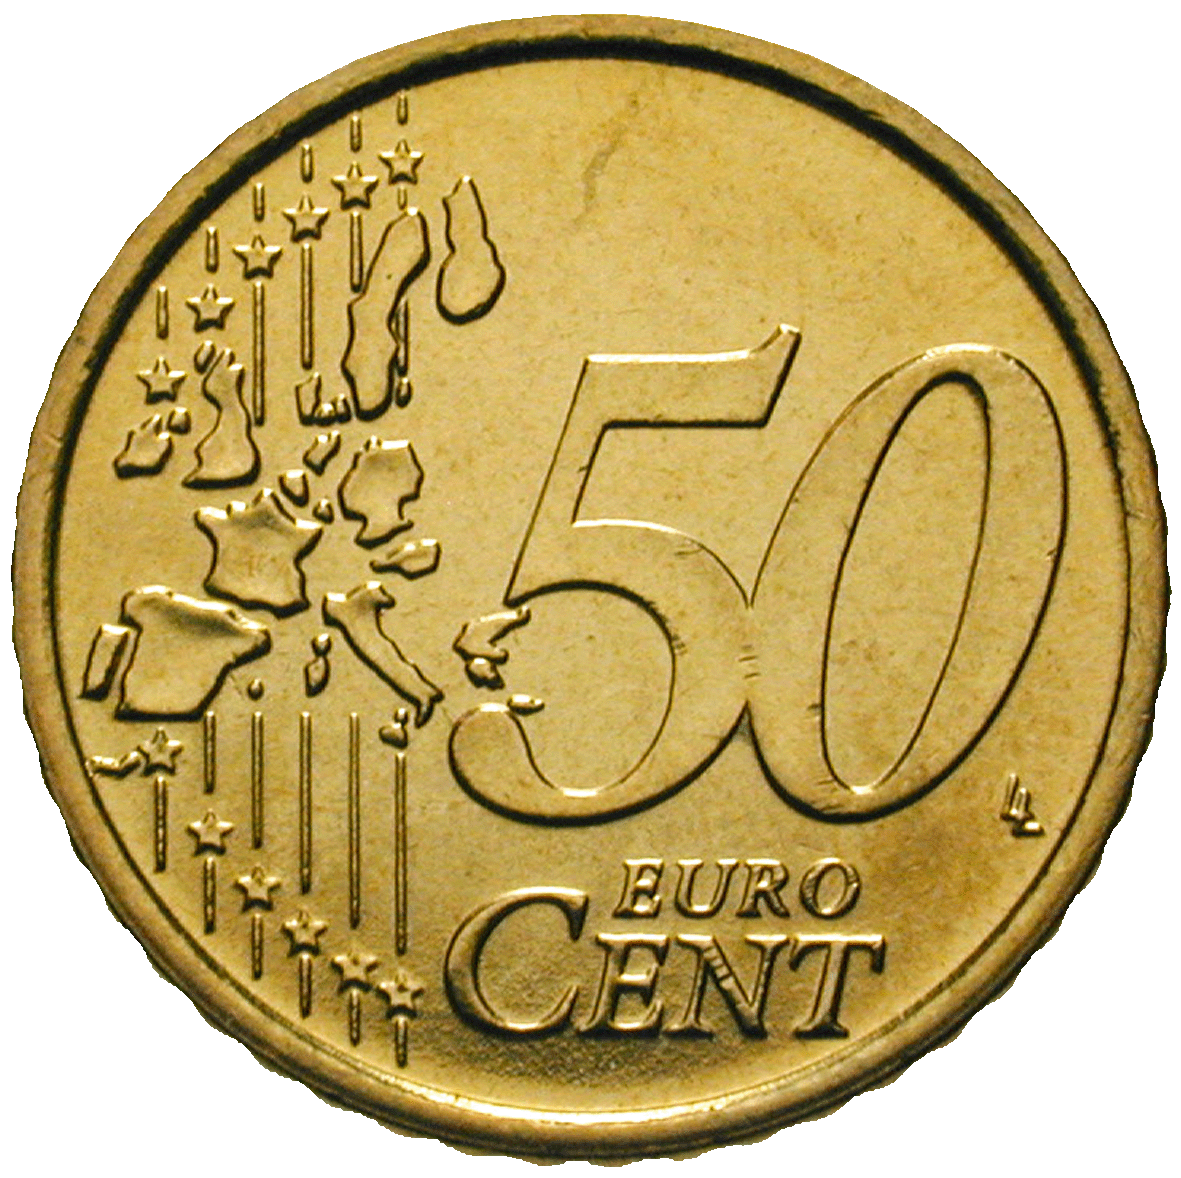 Republic of Italy, 50 Euro Cent 2002 (reverse)